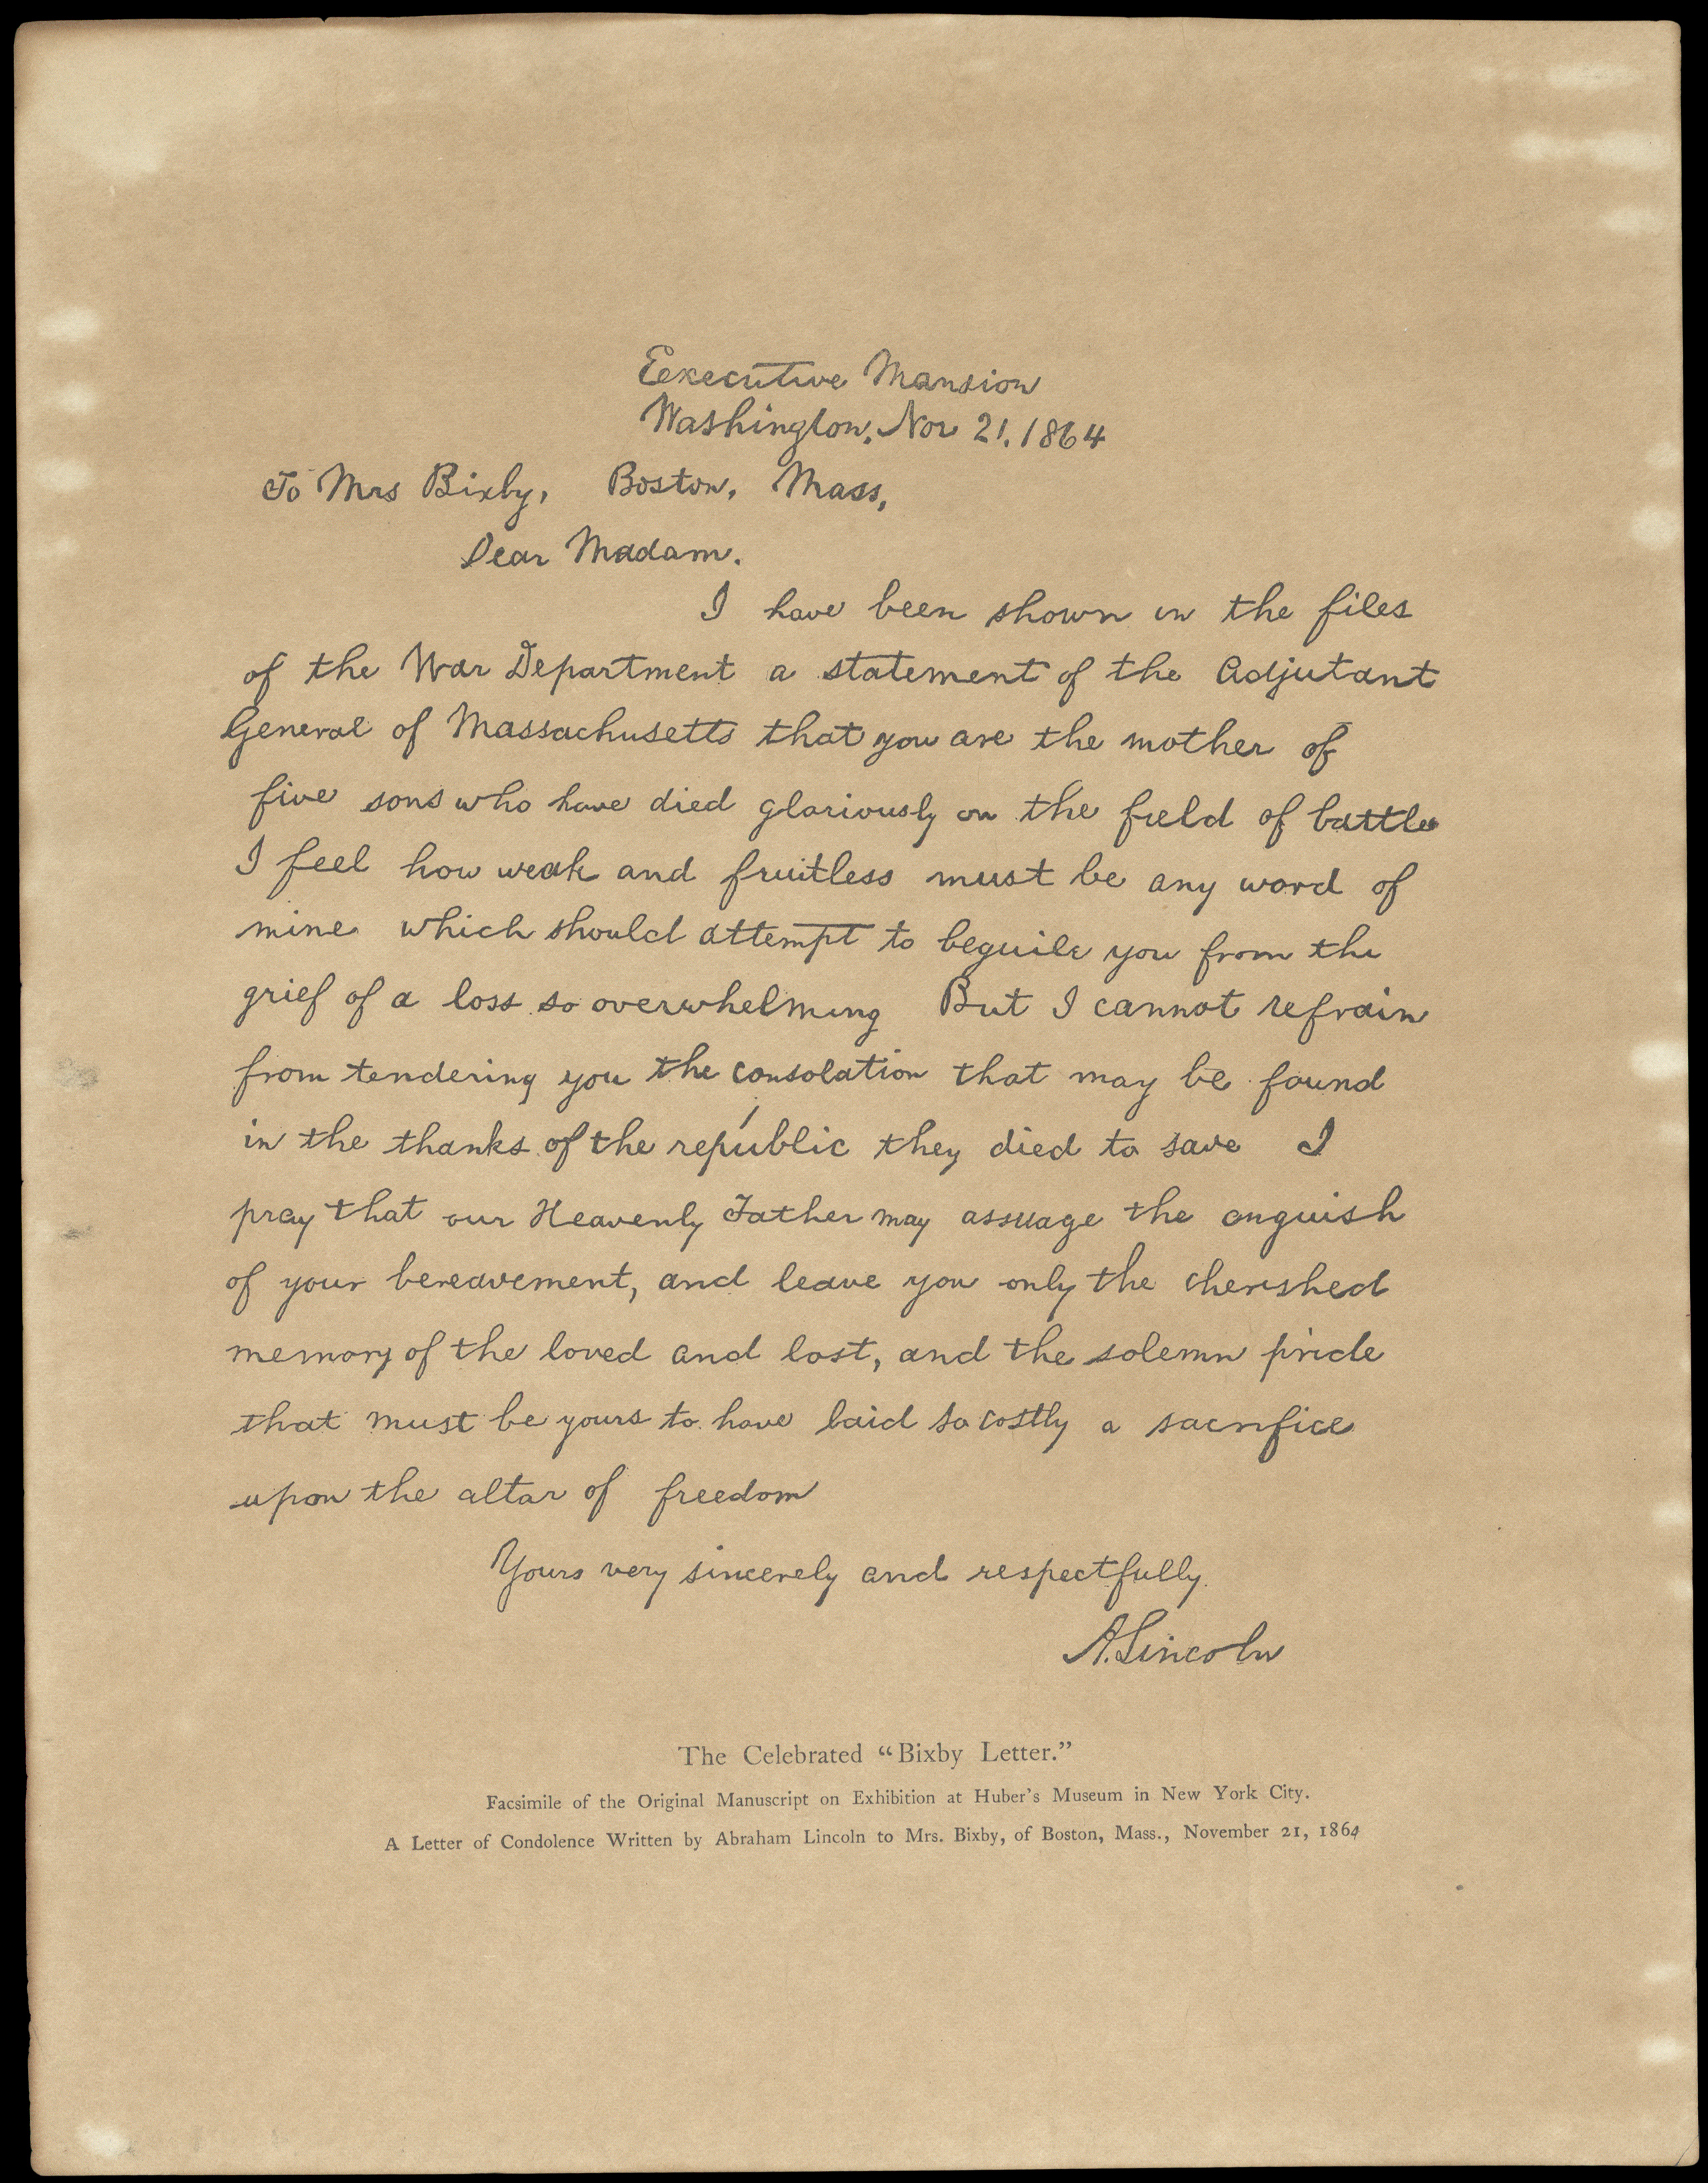 President Lincoln/'s letter to Mrs Bixby Fine Art Print Civil War Reproduction